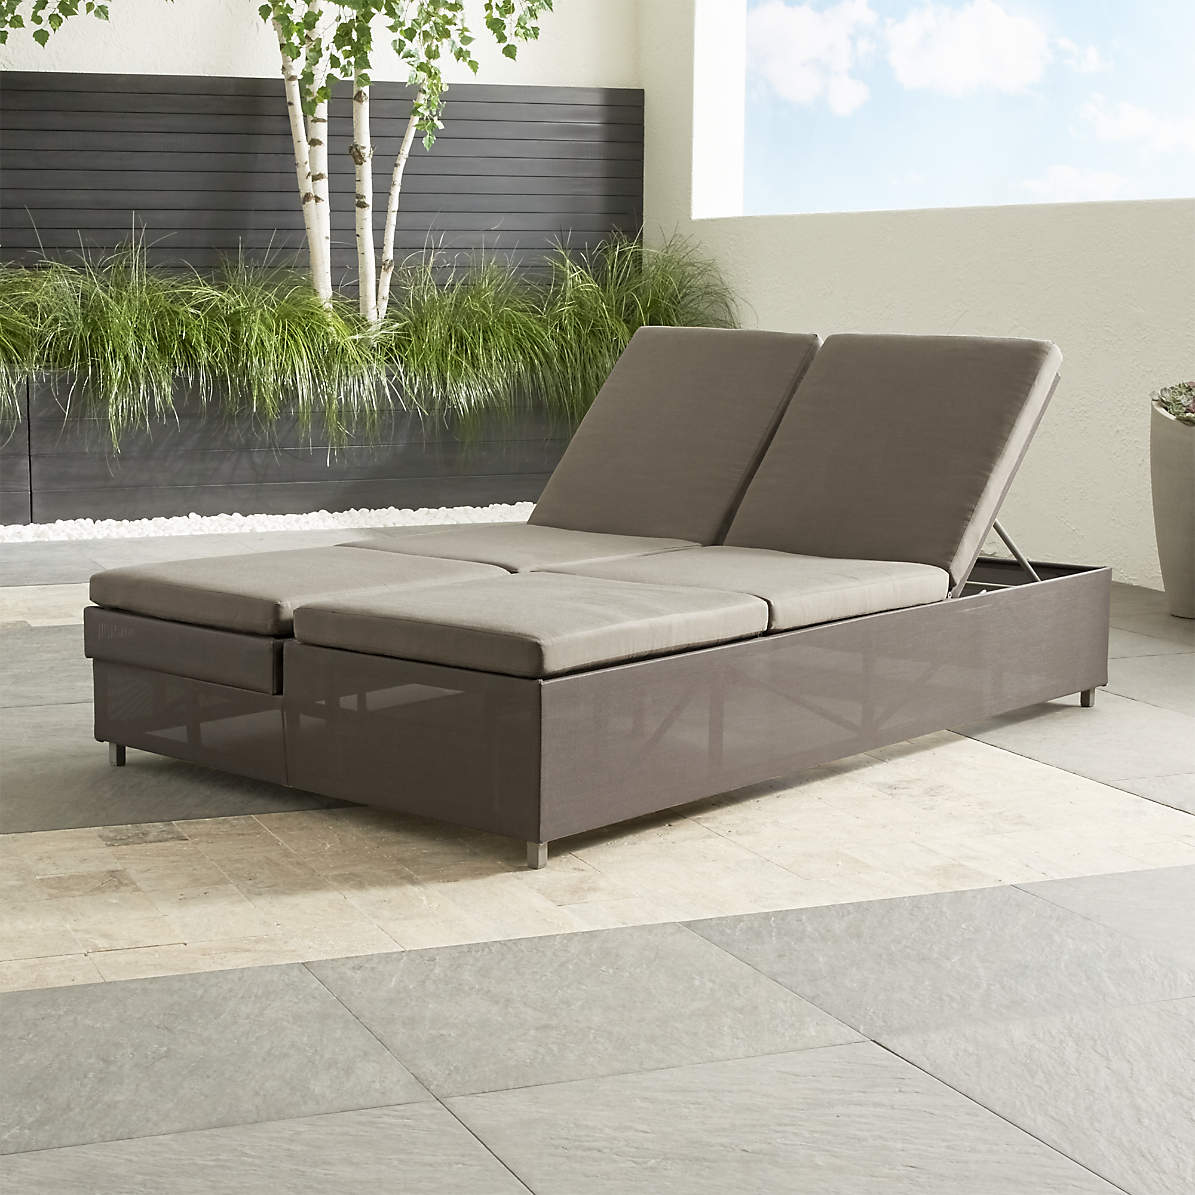 Dune Taupe Double Chaise Sofa Lounge With Sunbrella Cushions Reviews Crate And Barrel Canada